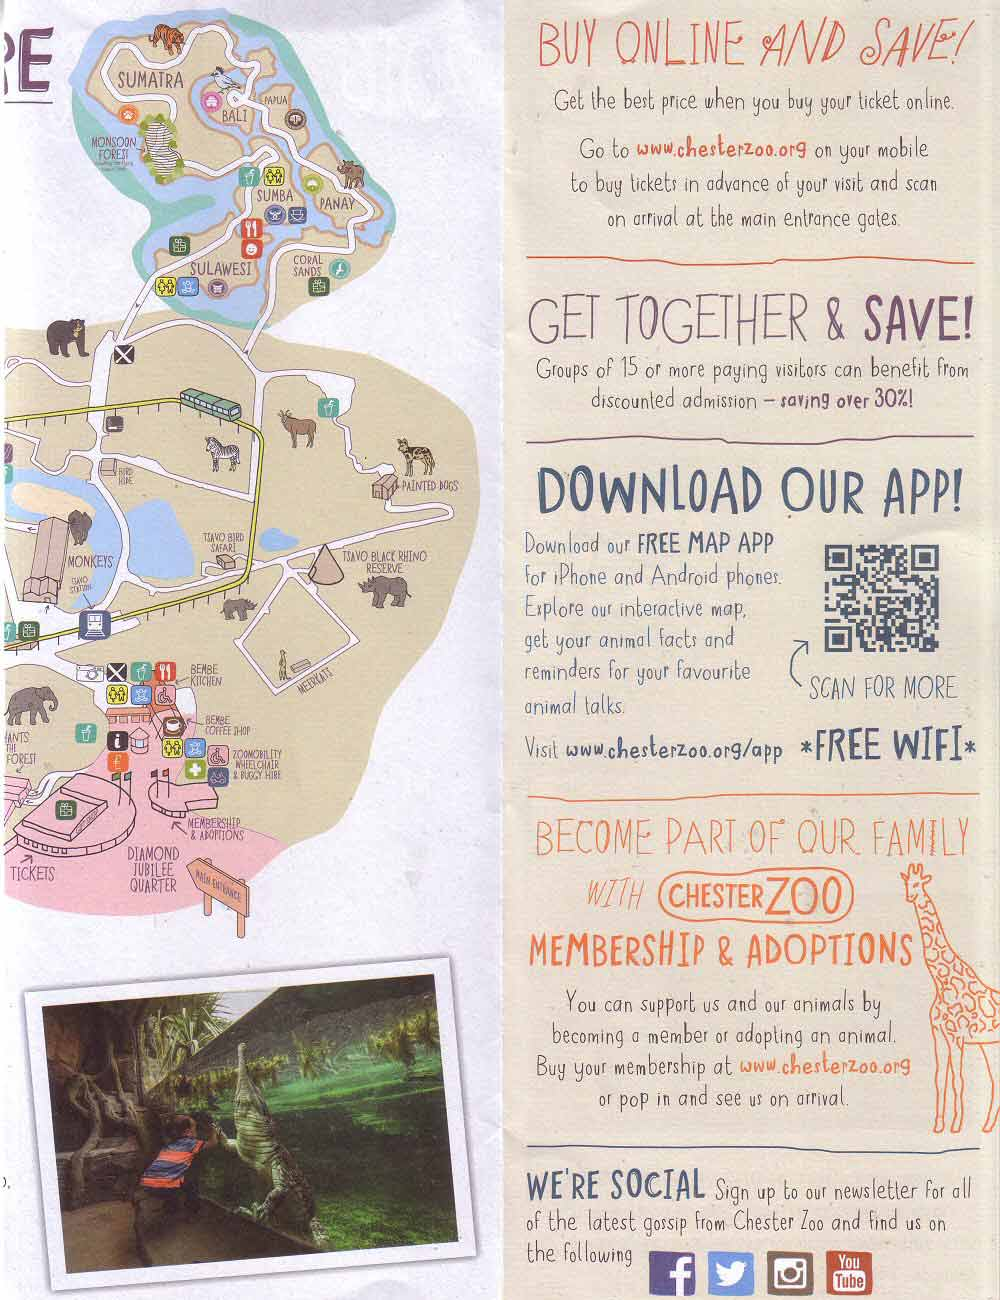 About Chester Zoo